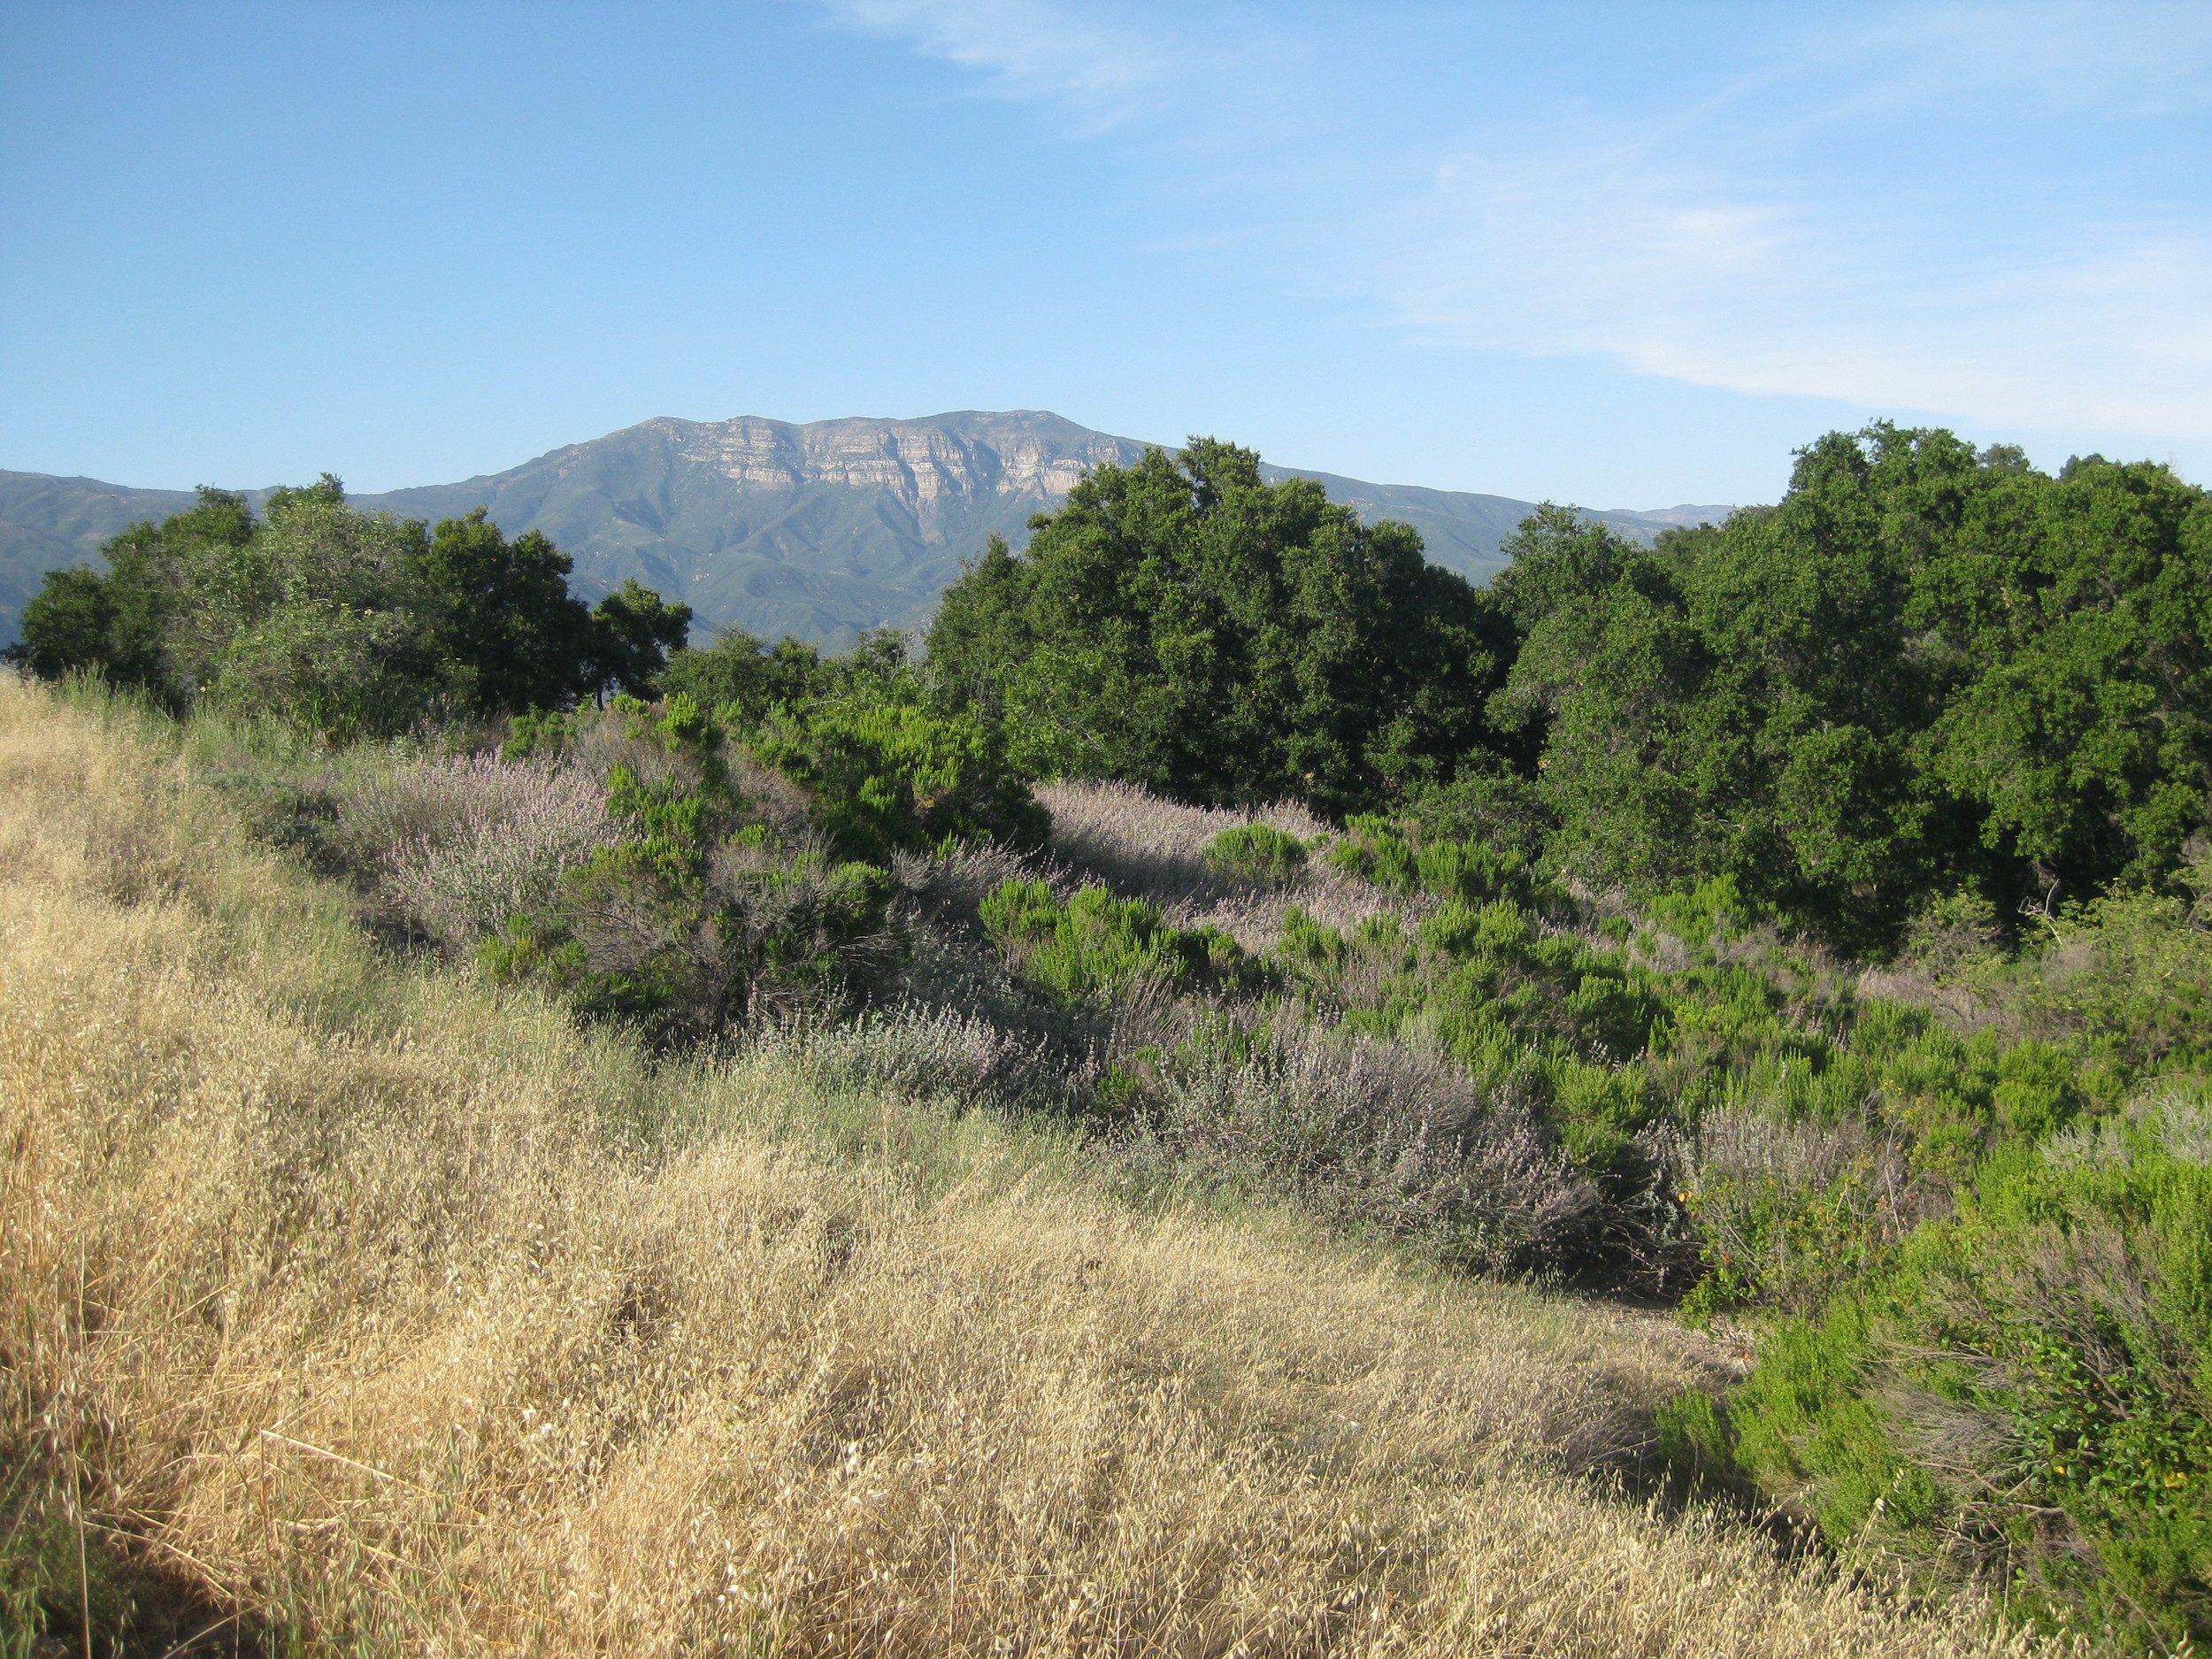 SUMMERTIME AT MEHER MOUNT with a view of the Topa Topa Bluffs. (Leslie Bridger photo, June 2011.)